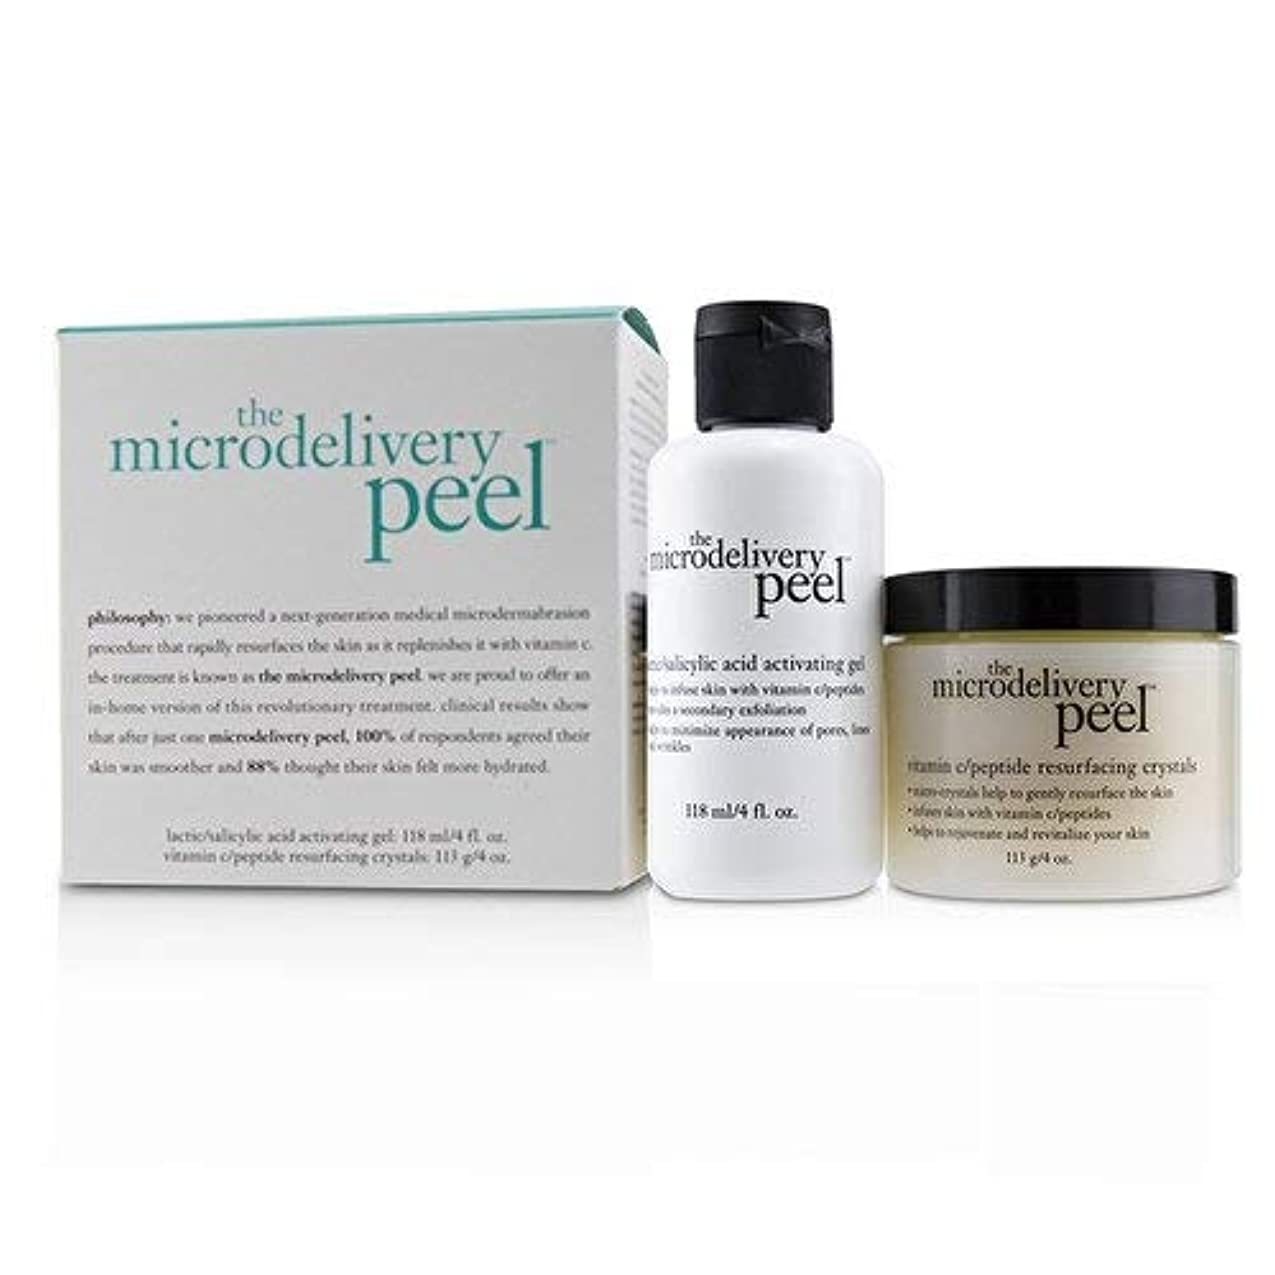 決して裏切るバスタブフィロソフィー The Microdelivery Peel: Lactic/Salicylic Acid Activating Gel 118ml + Vitamin C/Peptide Resurfacing Crystals...